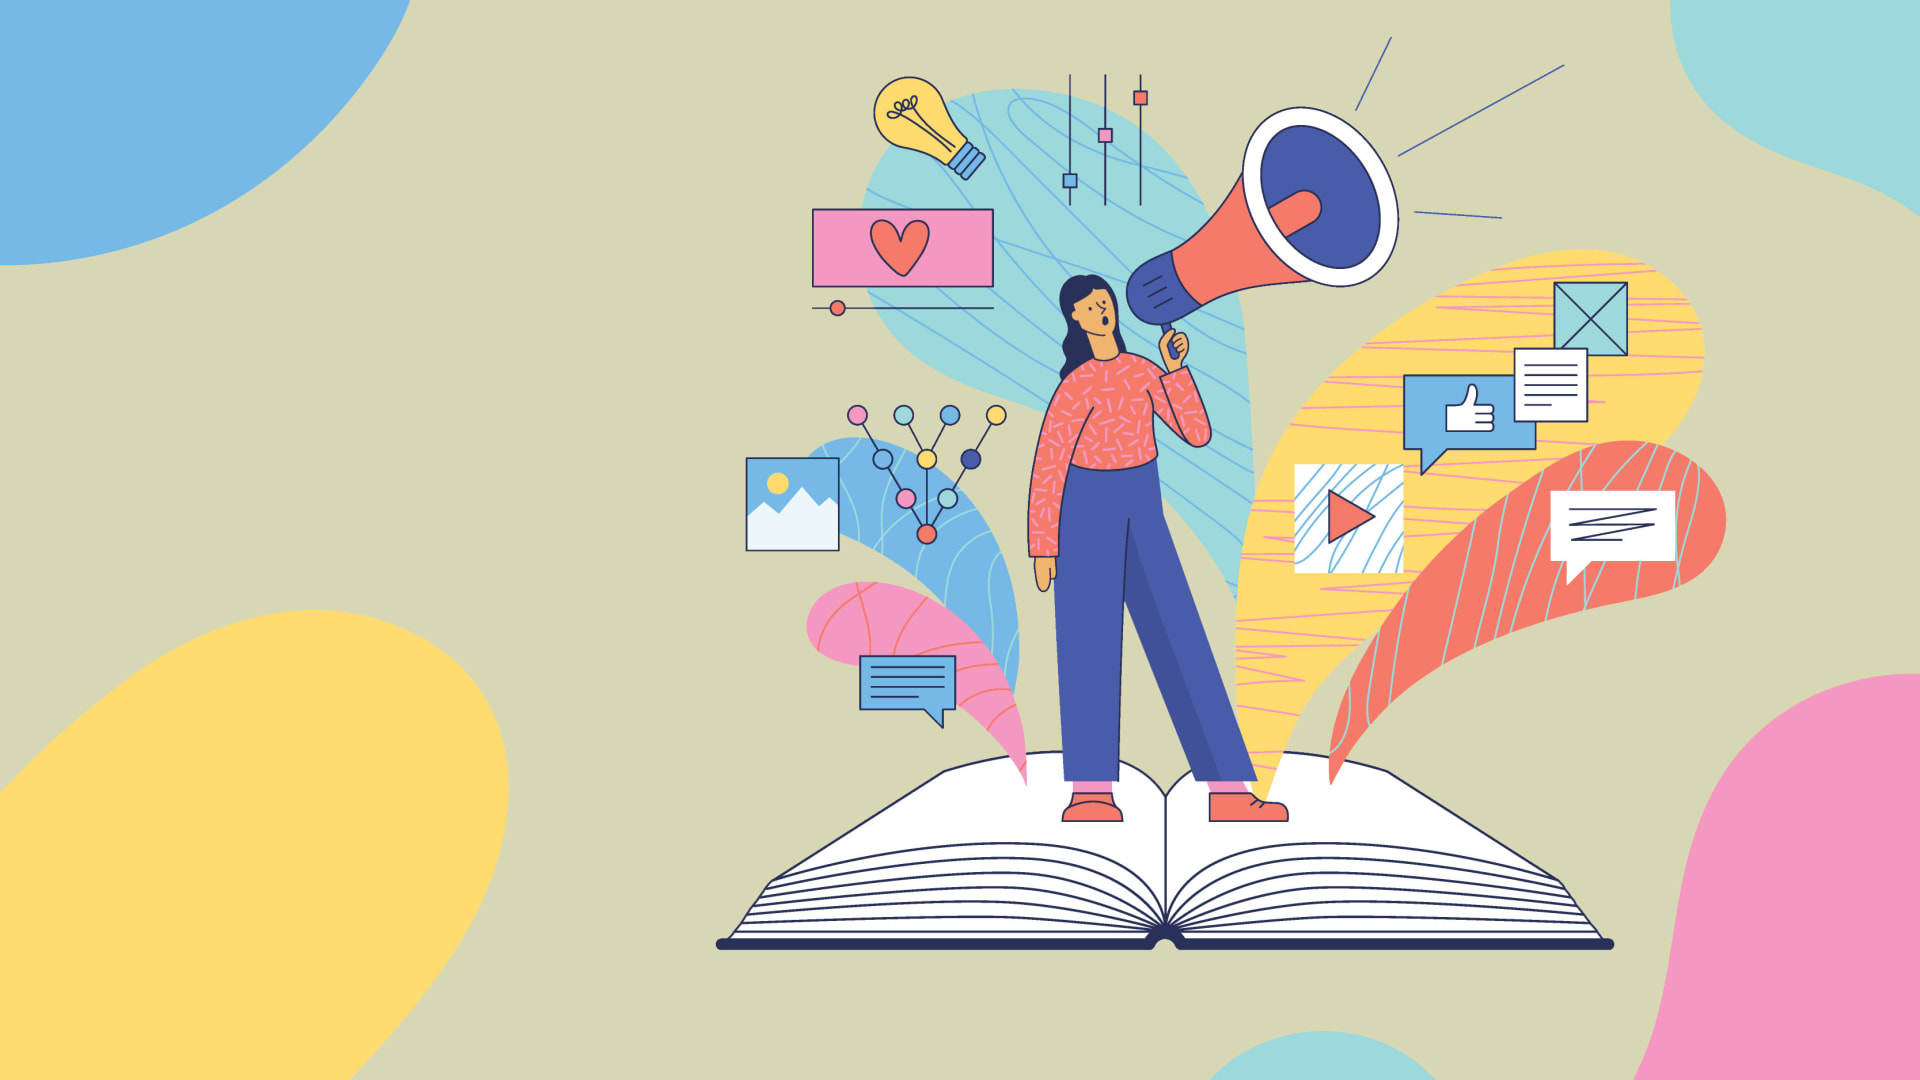 5 Storytelling Tips to Better Communicate Your Brand Message